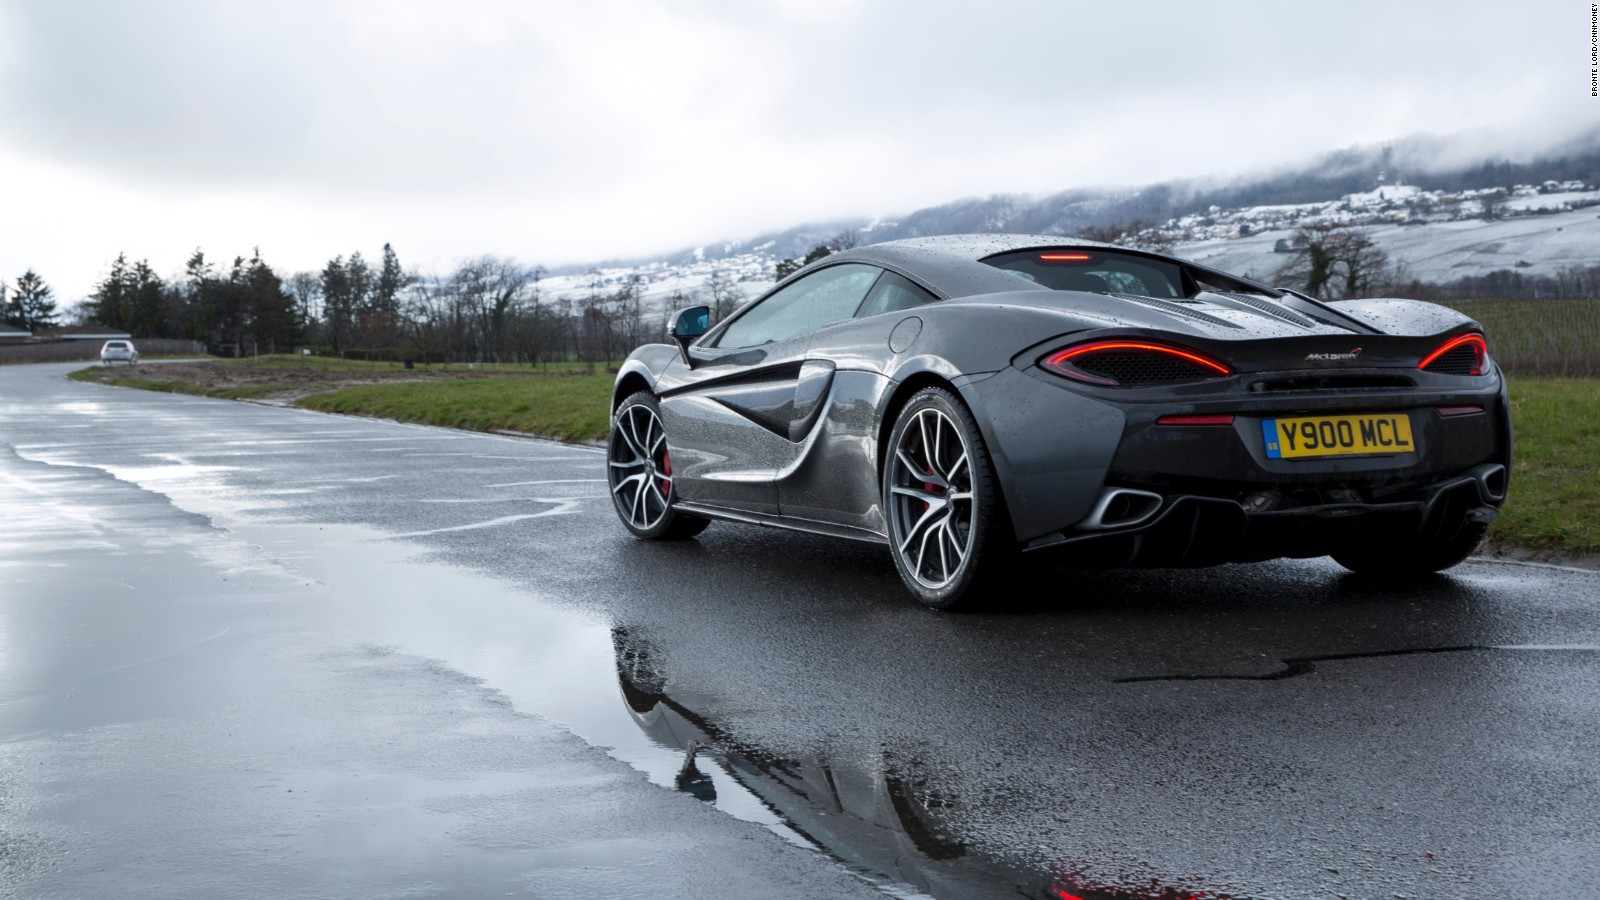 mclaren 570s how to design an affordable supercar cnn style